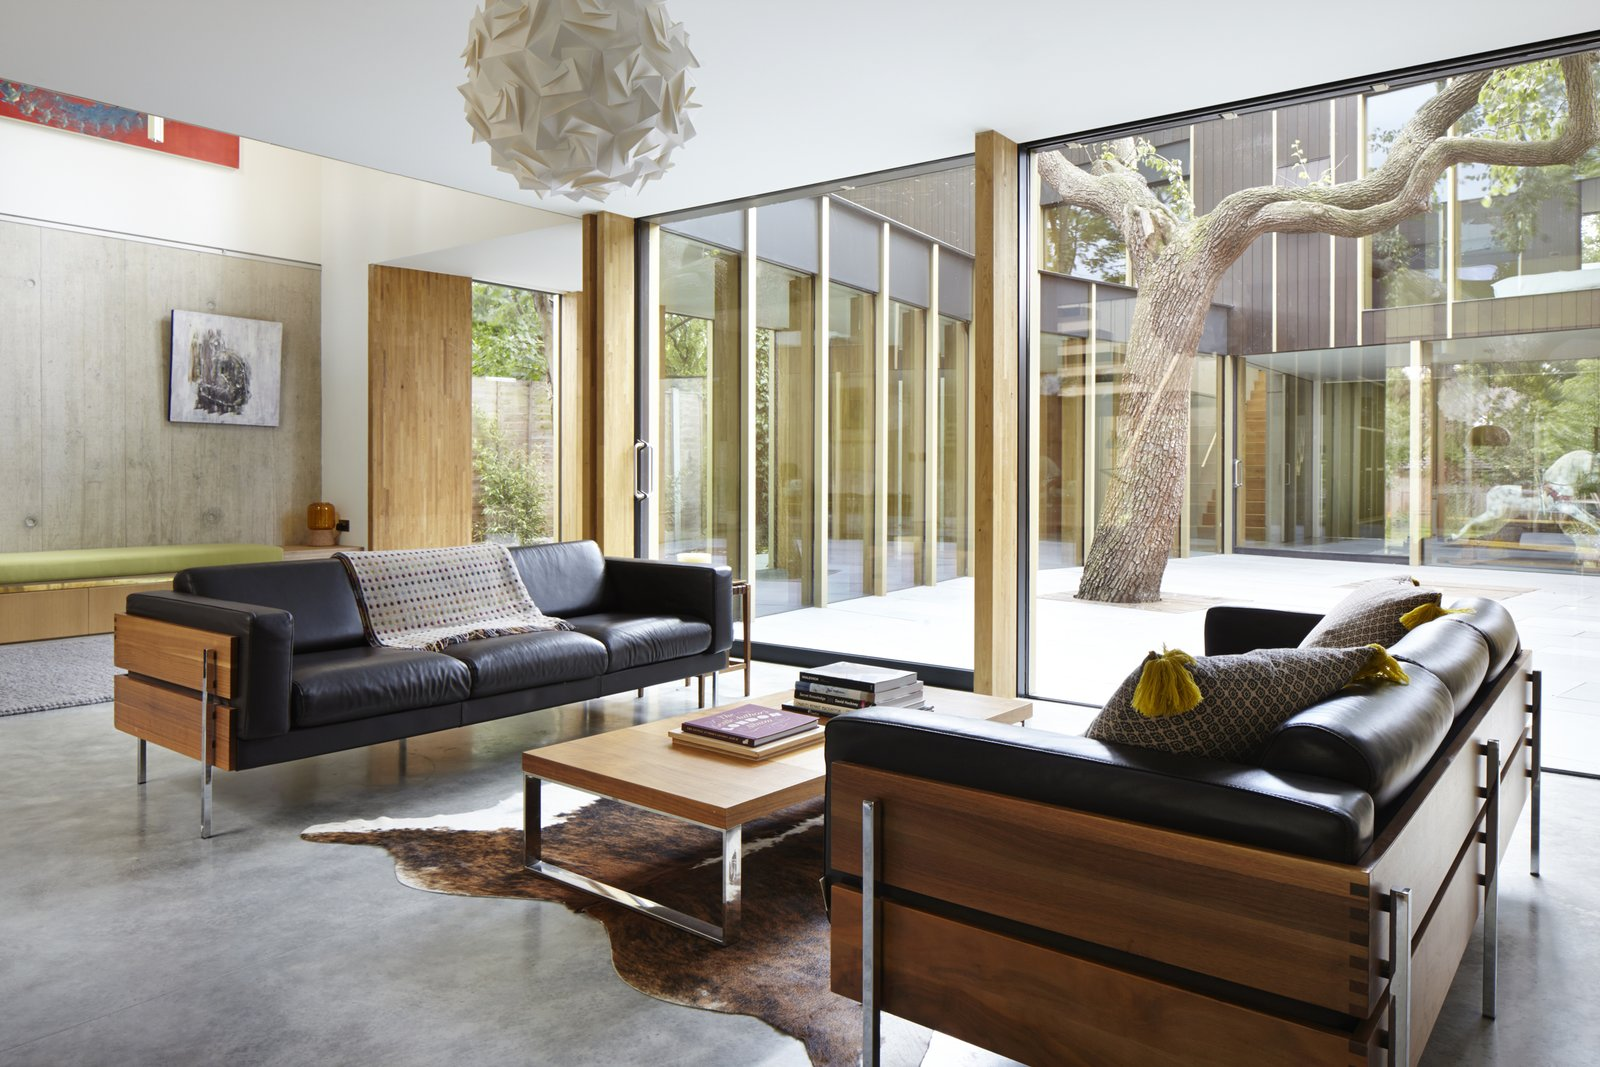 Living Room, Sofa, Concrete Floor, Coffee Tables, and Pendant Lighting The sofas are designed by Robin Day for Habitat. The walnut frame nicely contrasts with the soft leather cushions.  Photo 5 of 9 in This Modern Courtyard Home Celebrates a 100-Year-Old Tree